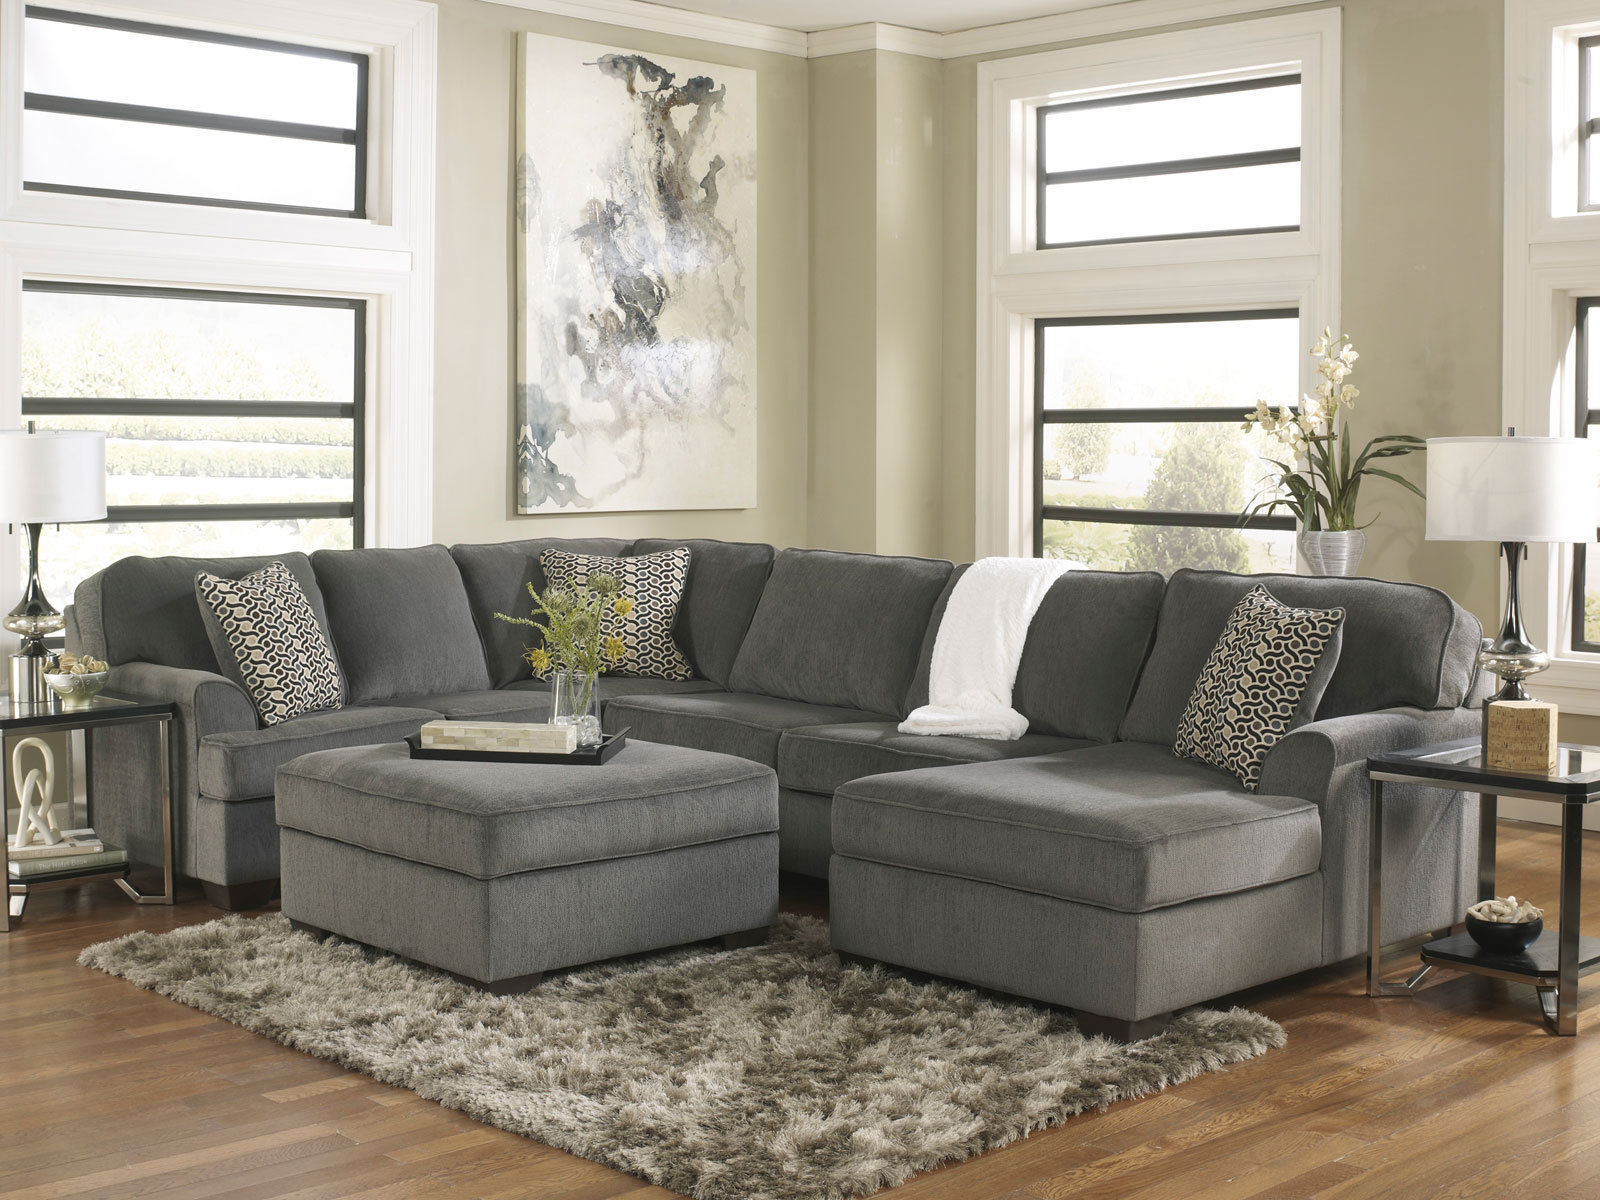 Grey Oversized Chair Sole Oversized Modern Gray Fabric Sofa Couch Sectional Set